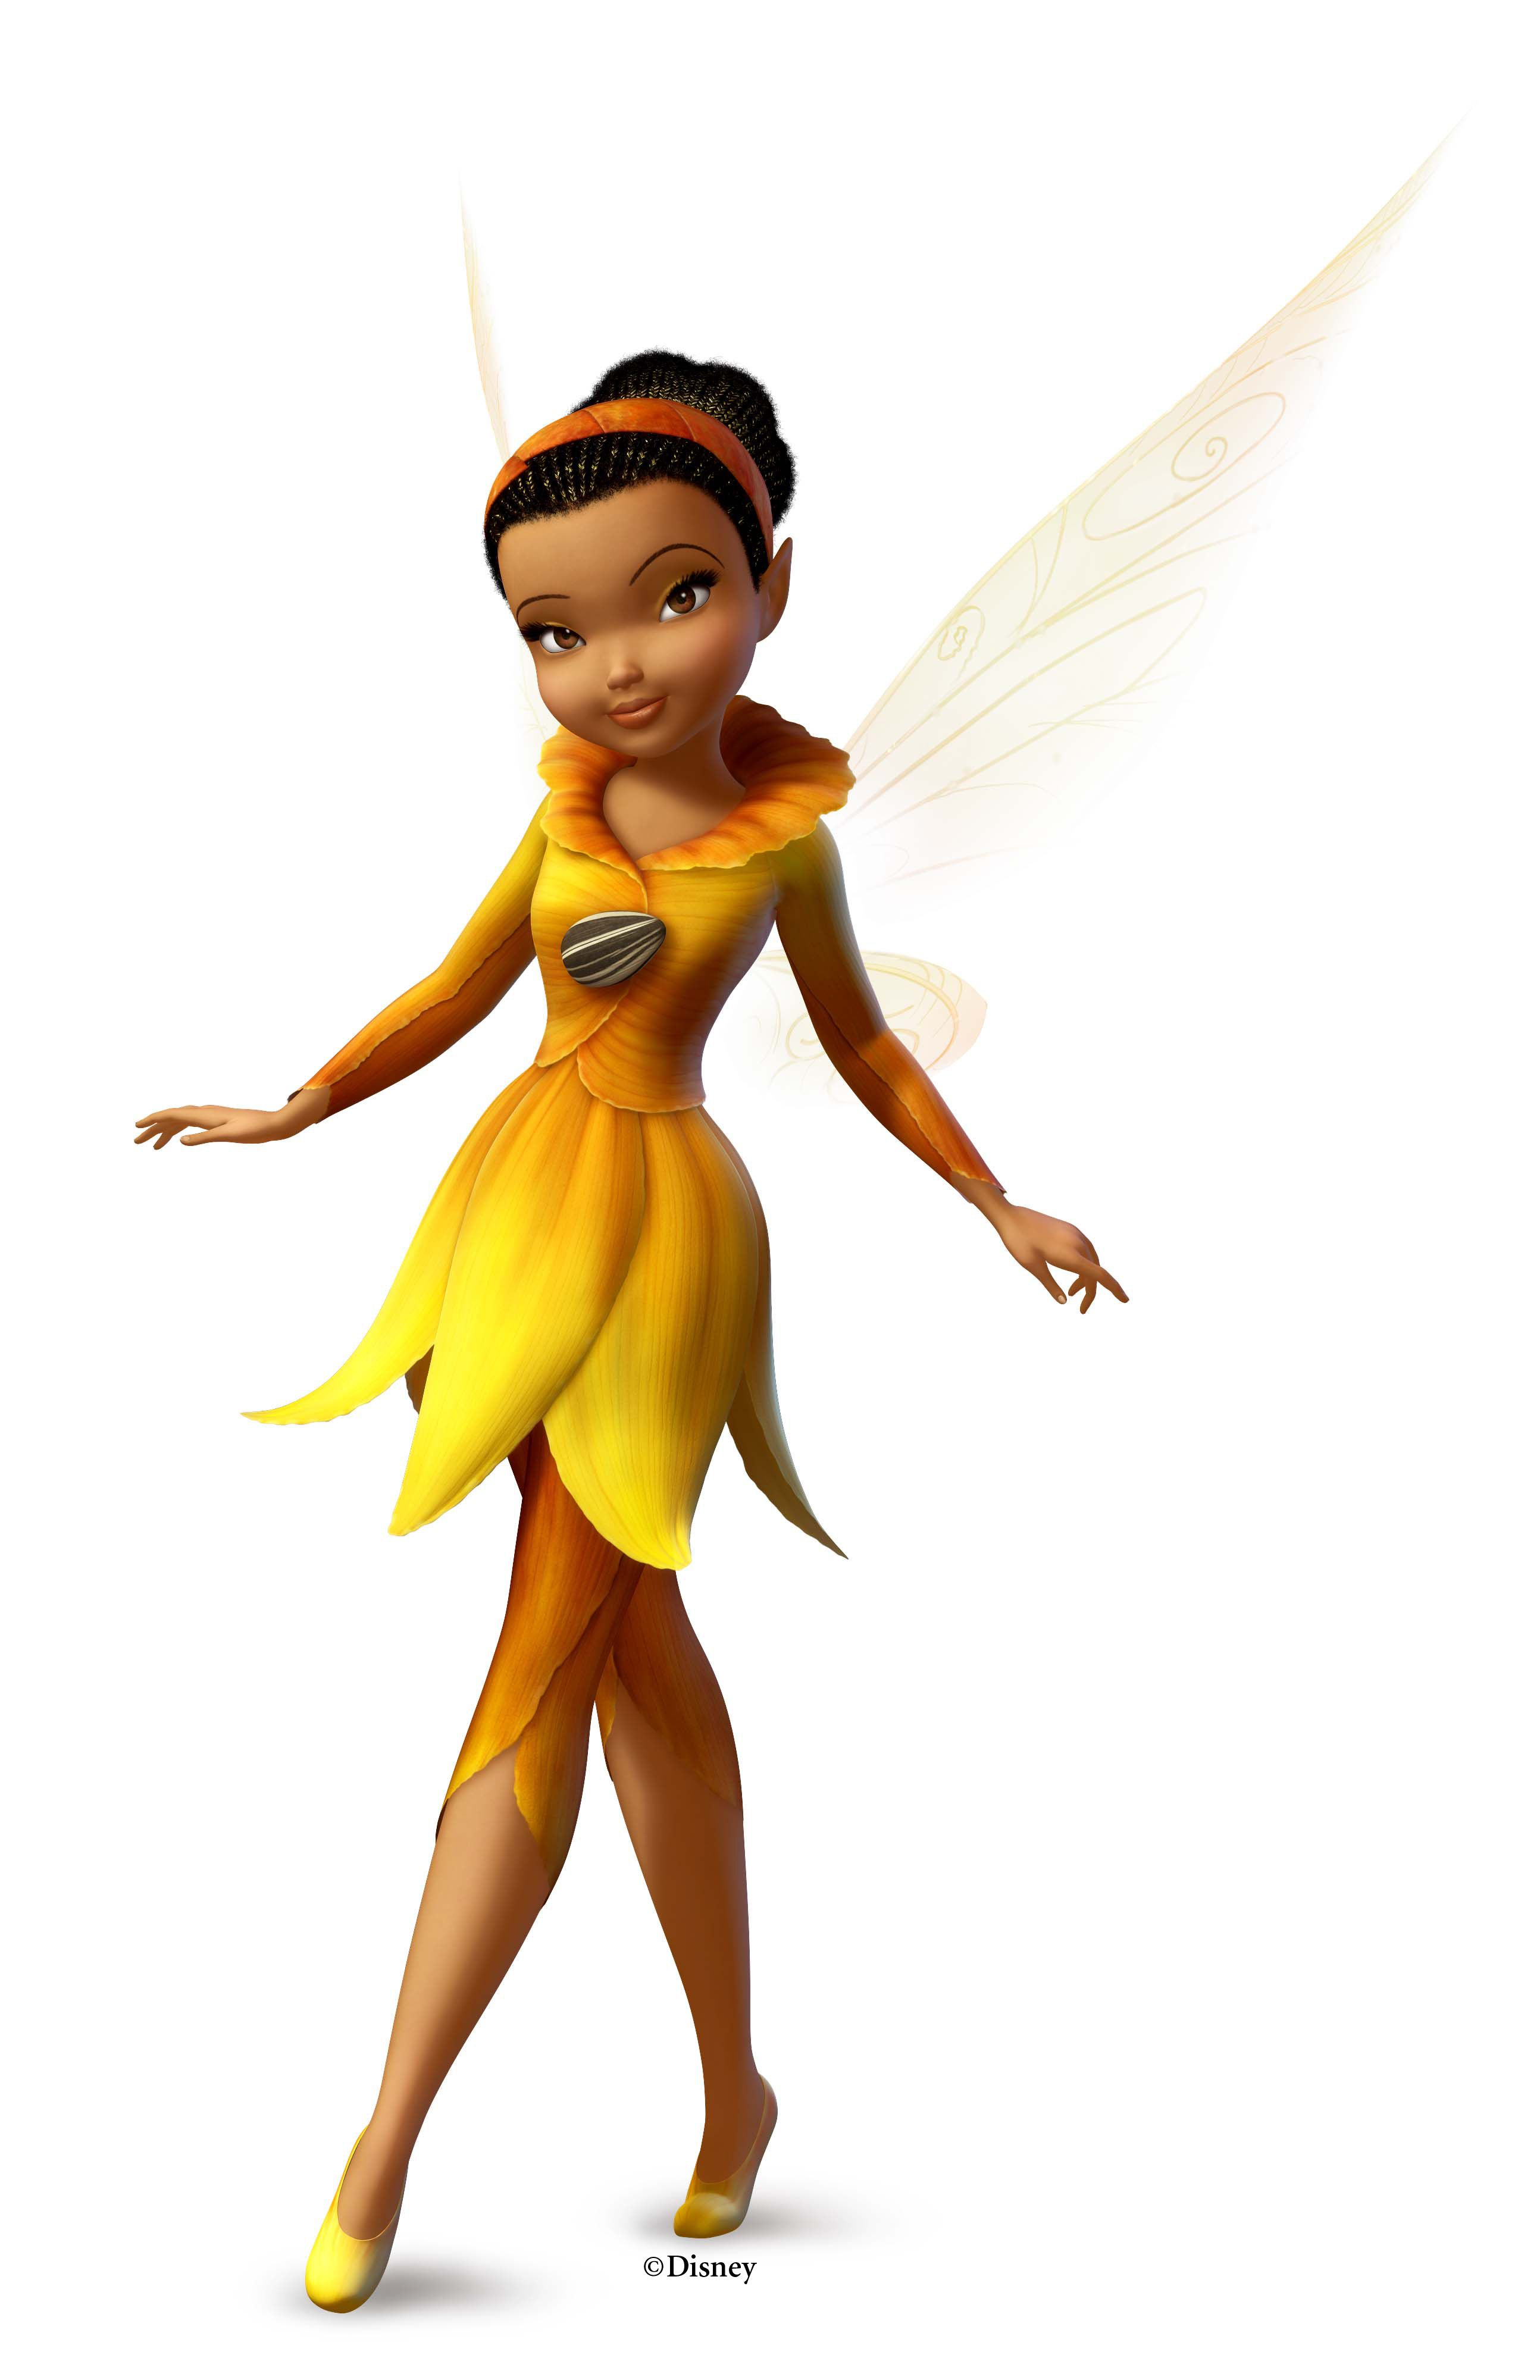 What Is Tinker Bell's Sister's Name | Interview: Tinker ...